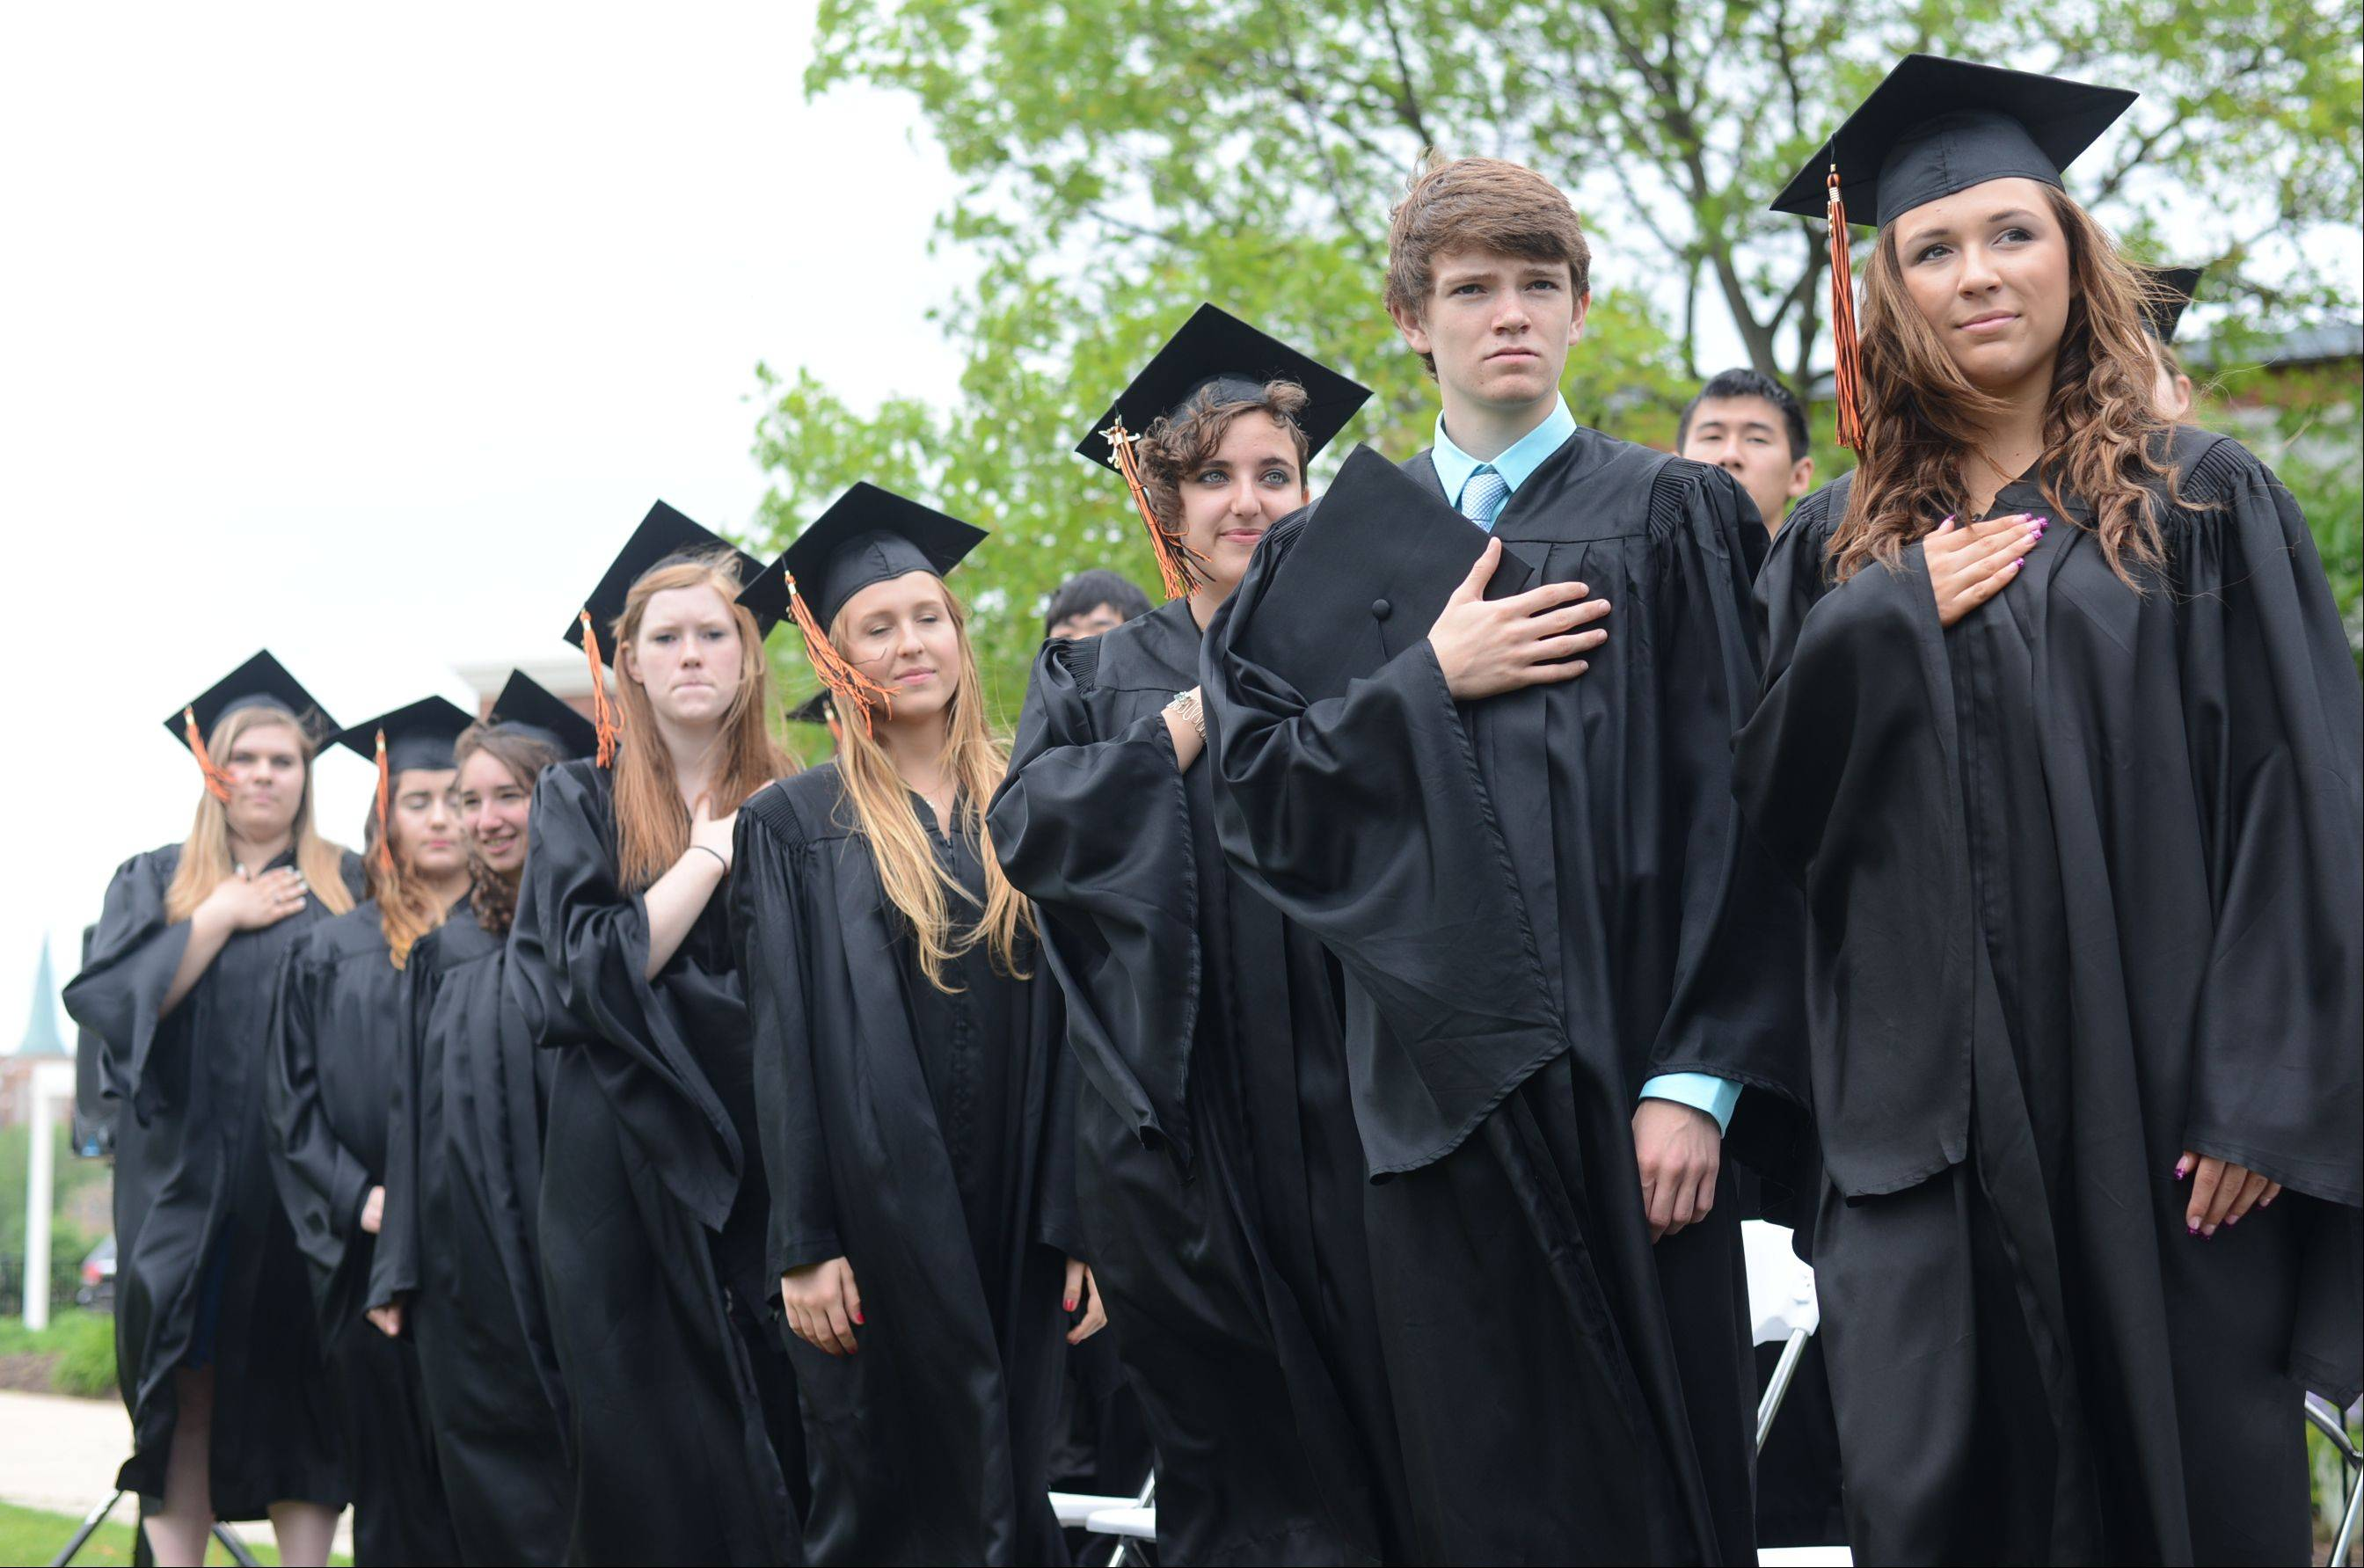 Images from the Elgin Academy graduation ceremony Saturday, June 1, 2013 in Elgin.